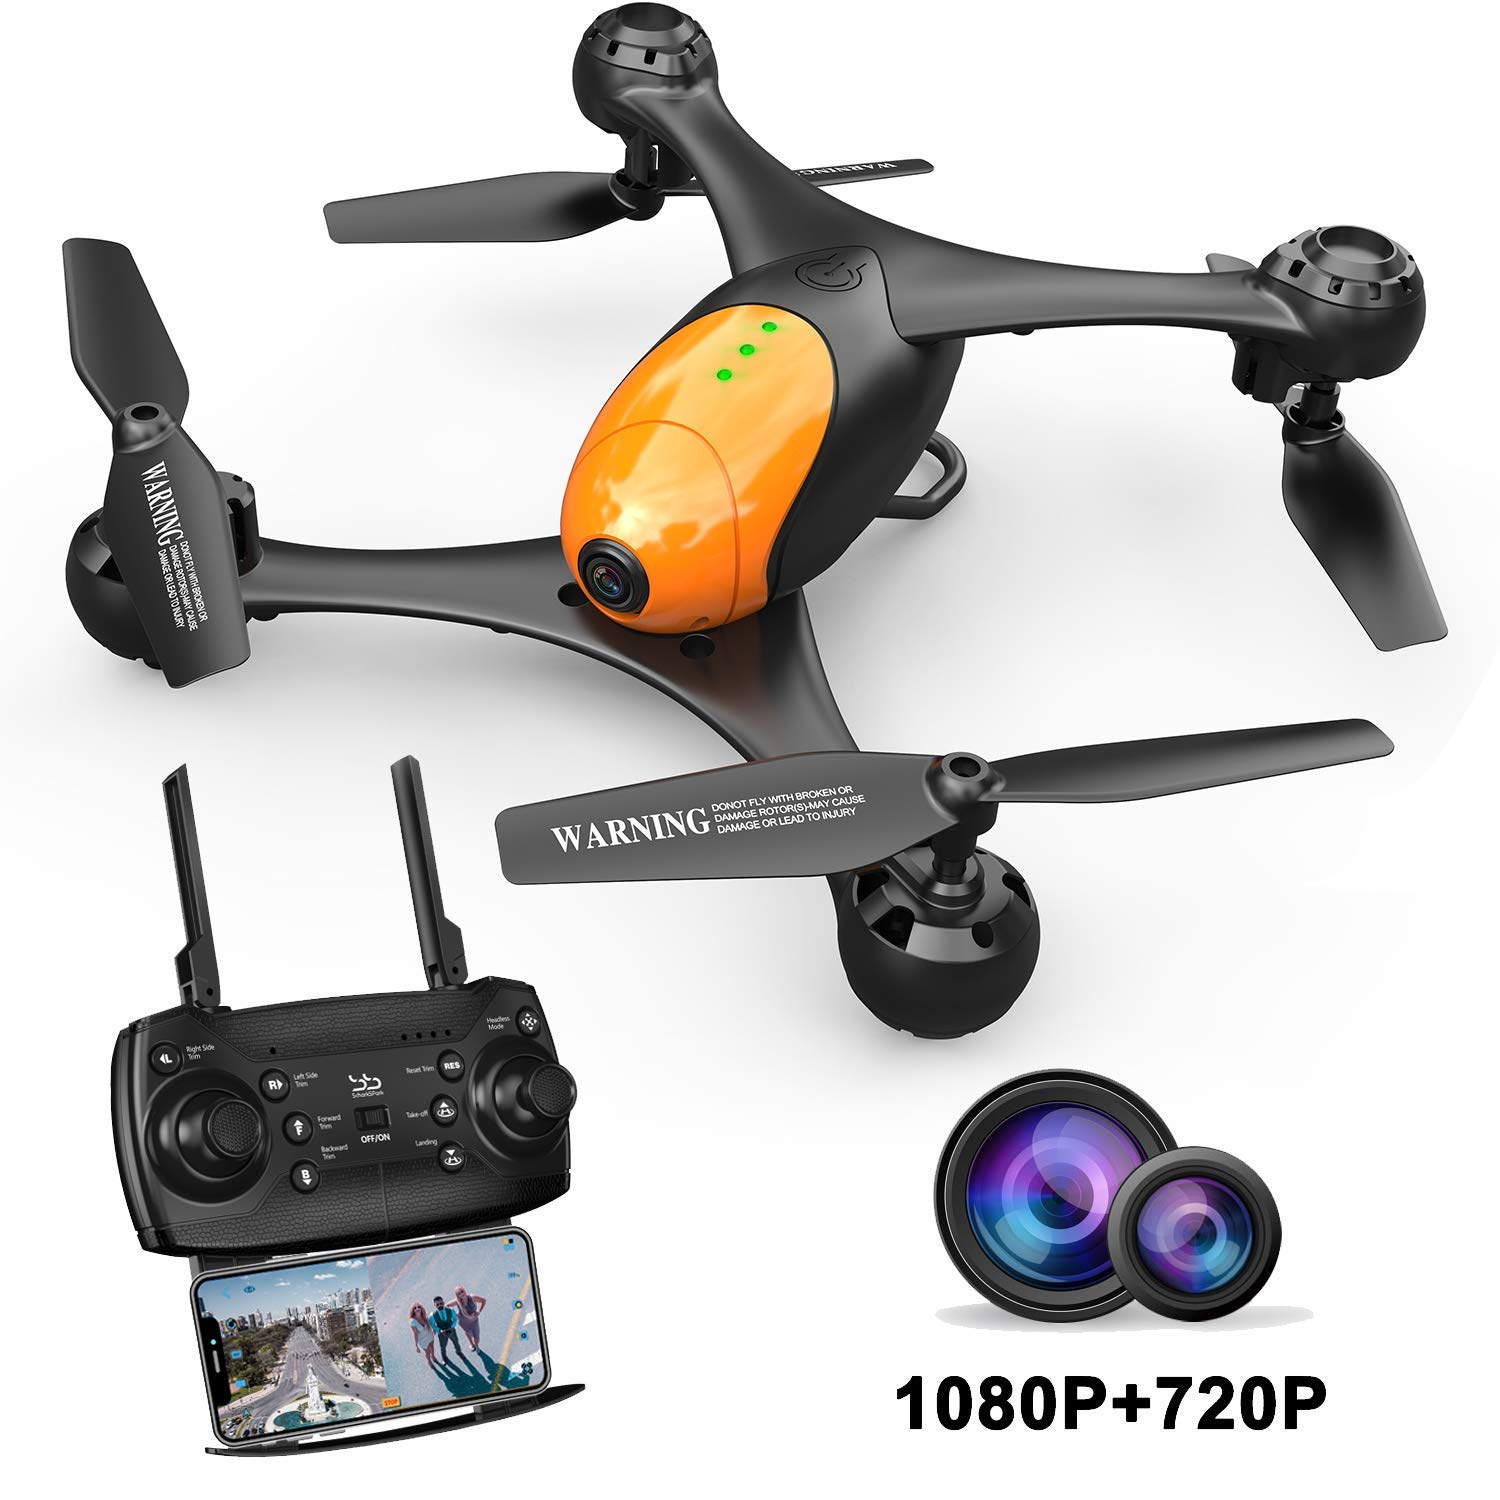 ScharkSpark SS41 Drone with 2 Cameras - 1080P FPV HD Camera/Video and 720P Optical Flow Positioning Camera, RC Toy Quadcopter Equipped with Lost-Control Protection Technology,Altitude Hold by ScharkSpark